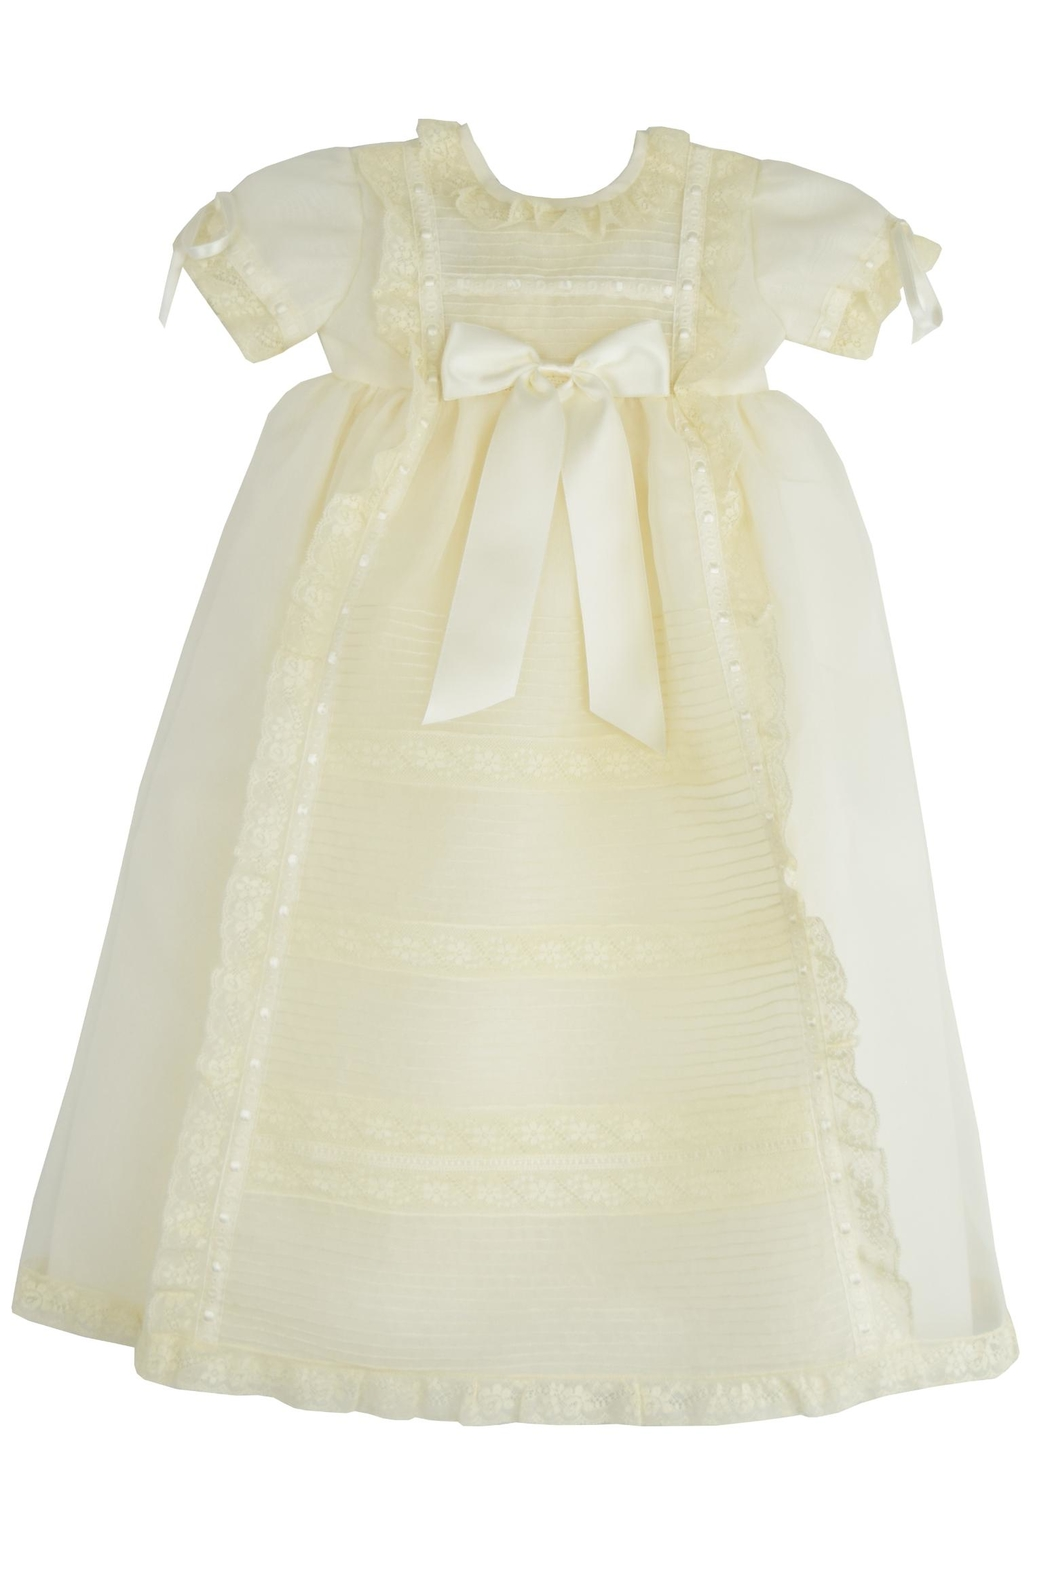 Granlei 1980 Lace Baptism Gown from Florida by Yoyo Children\'s ...